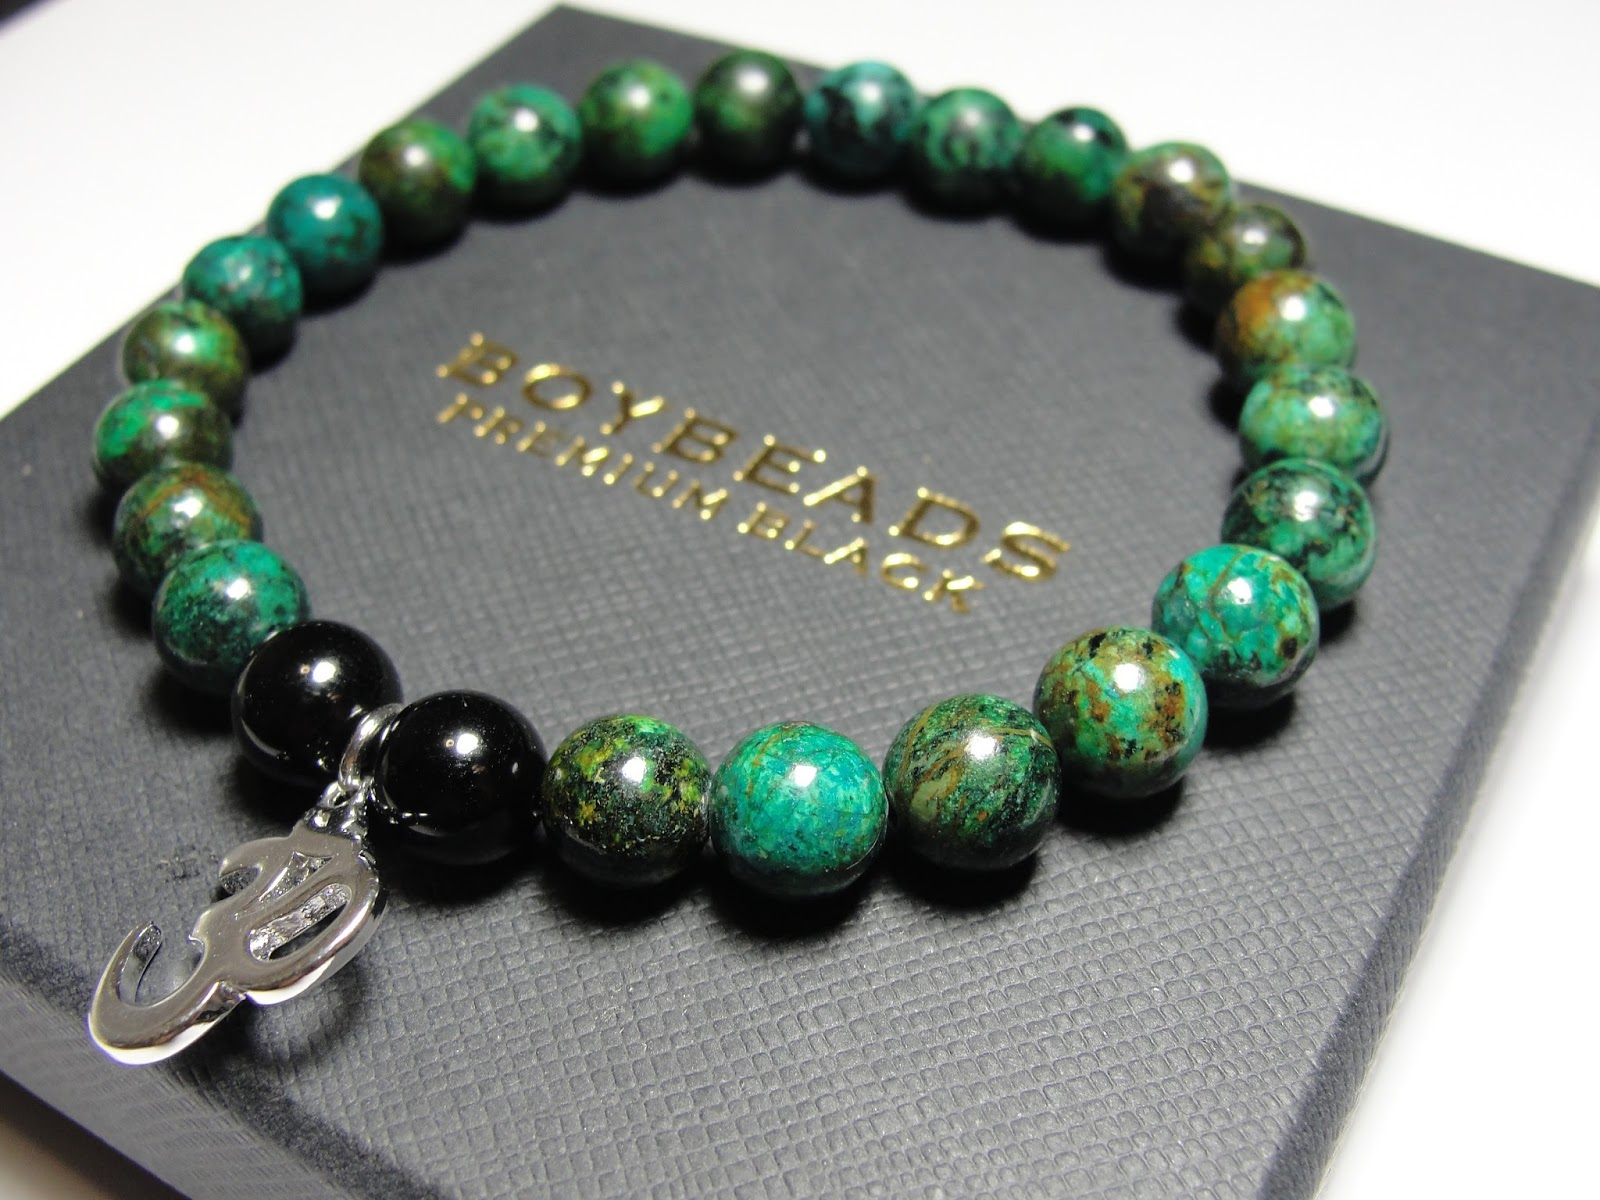 Boybeads Custom Beaded Bracelets For Men New York, Ny